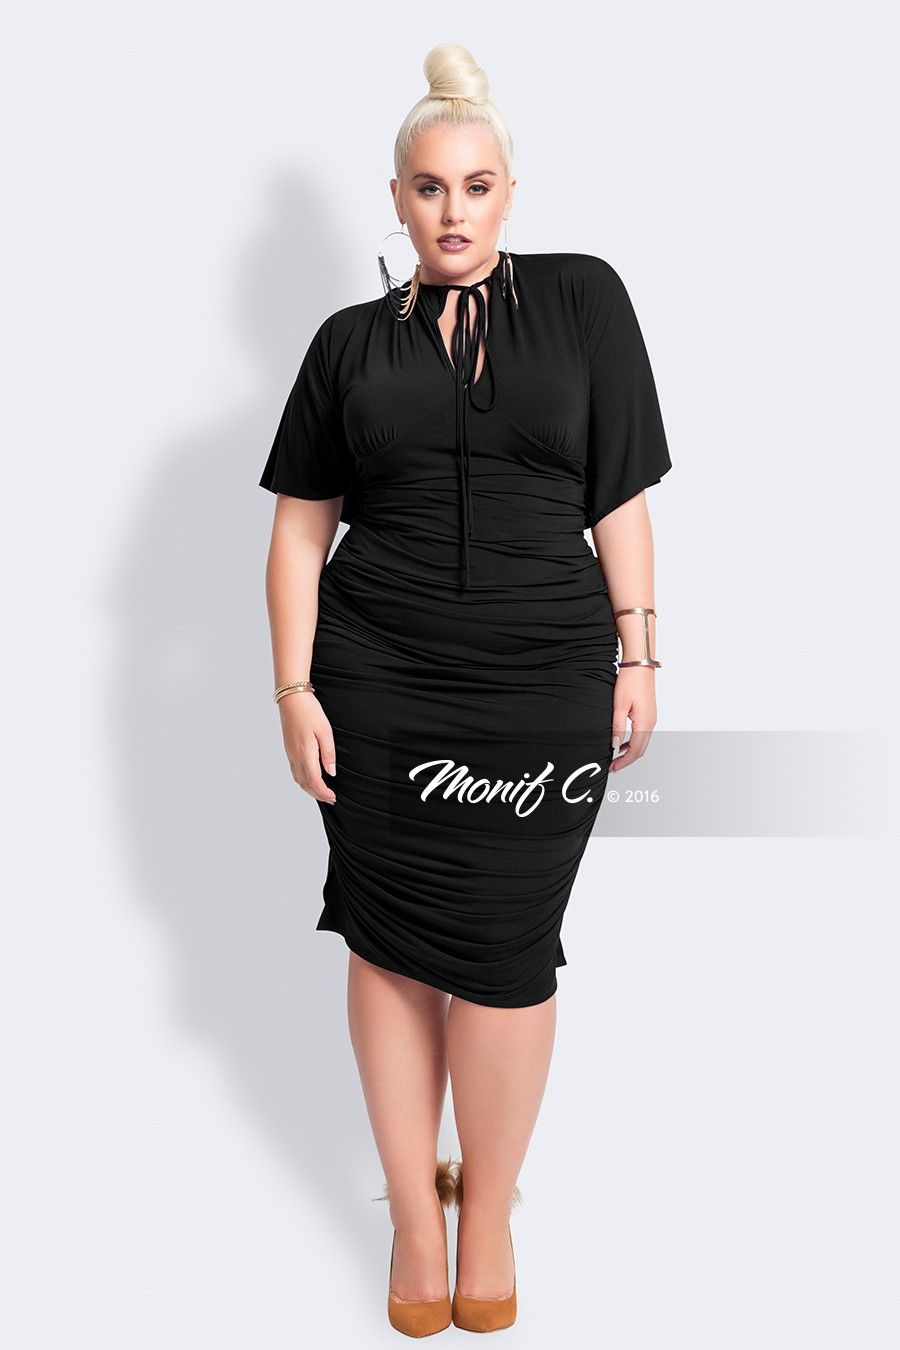 926a0dca269 nelliblackfrontjpg-Monif C. Plus Size dress